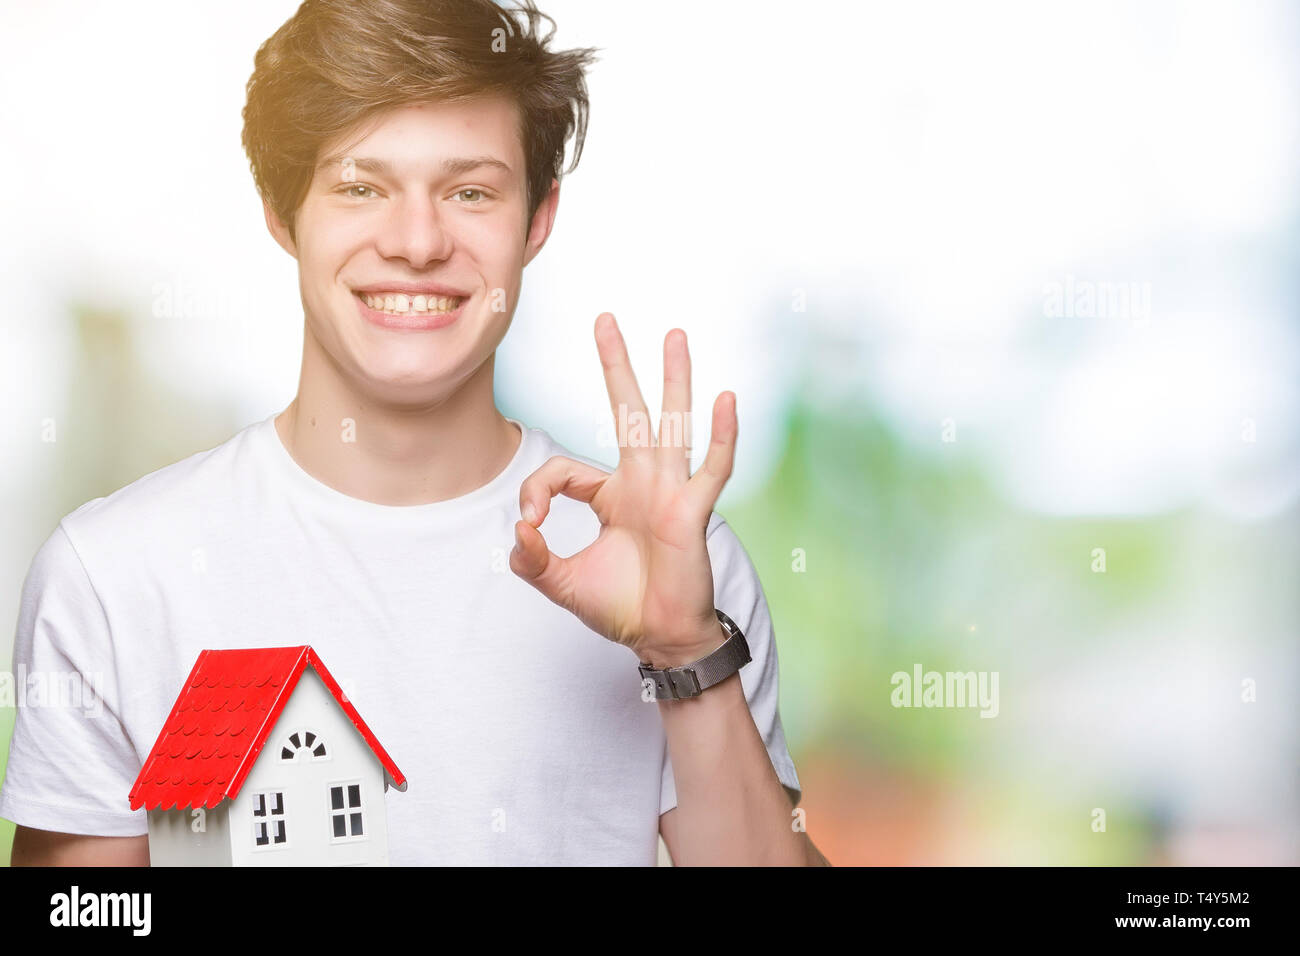 Young man holding house over isolated background doing ok sign with fingers, excellent symbol - Stock Image